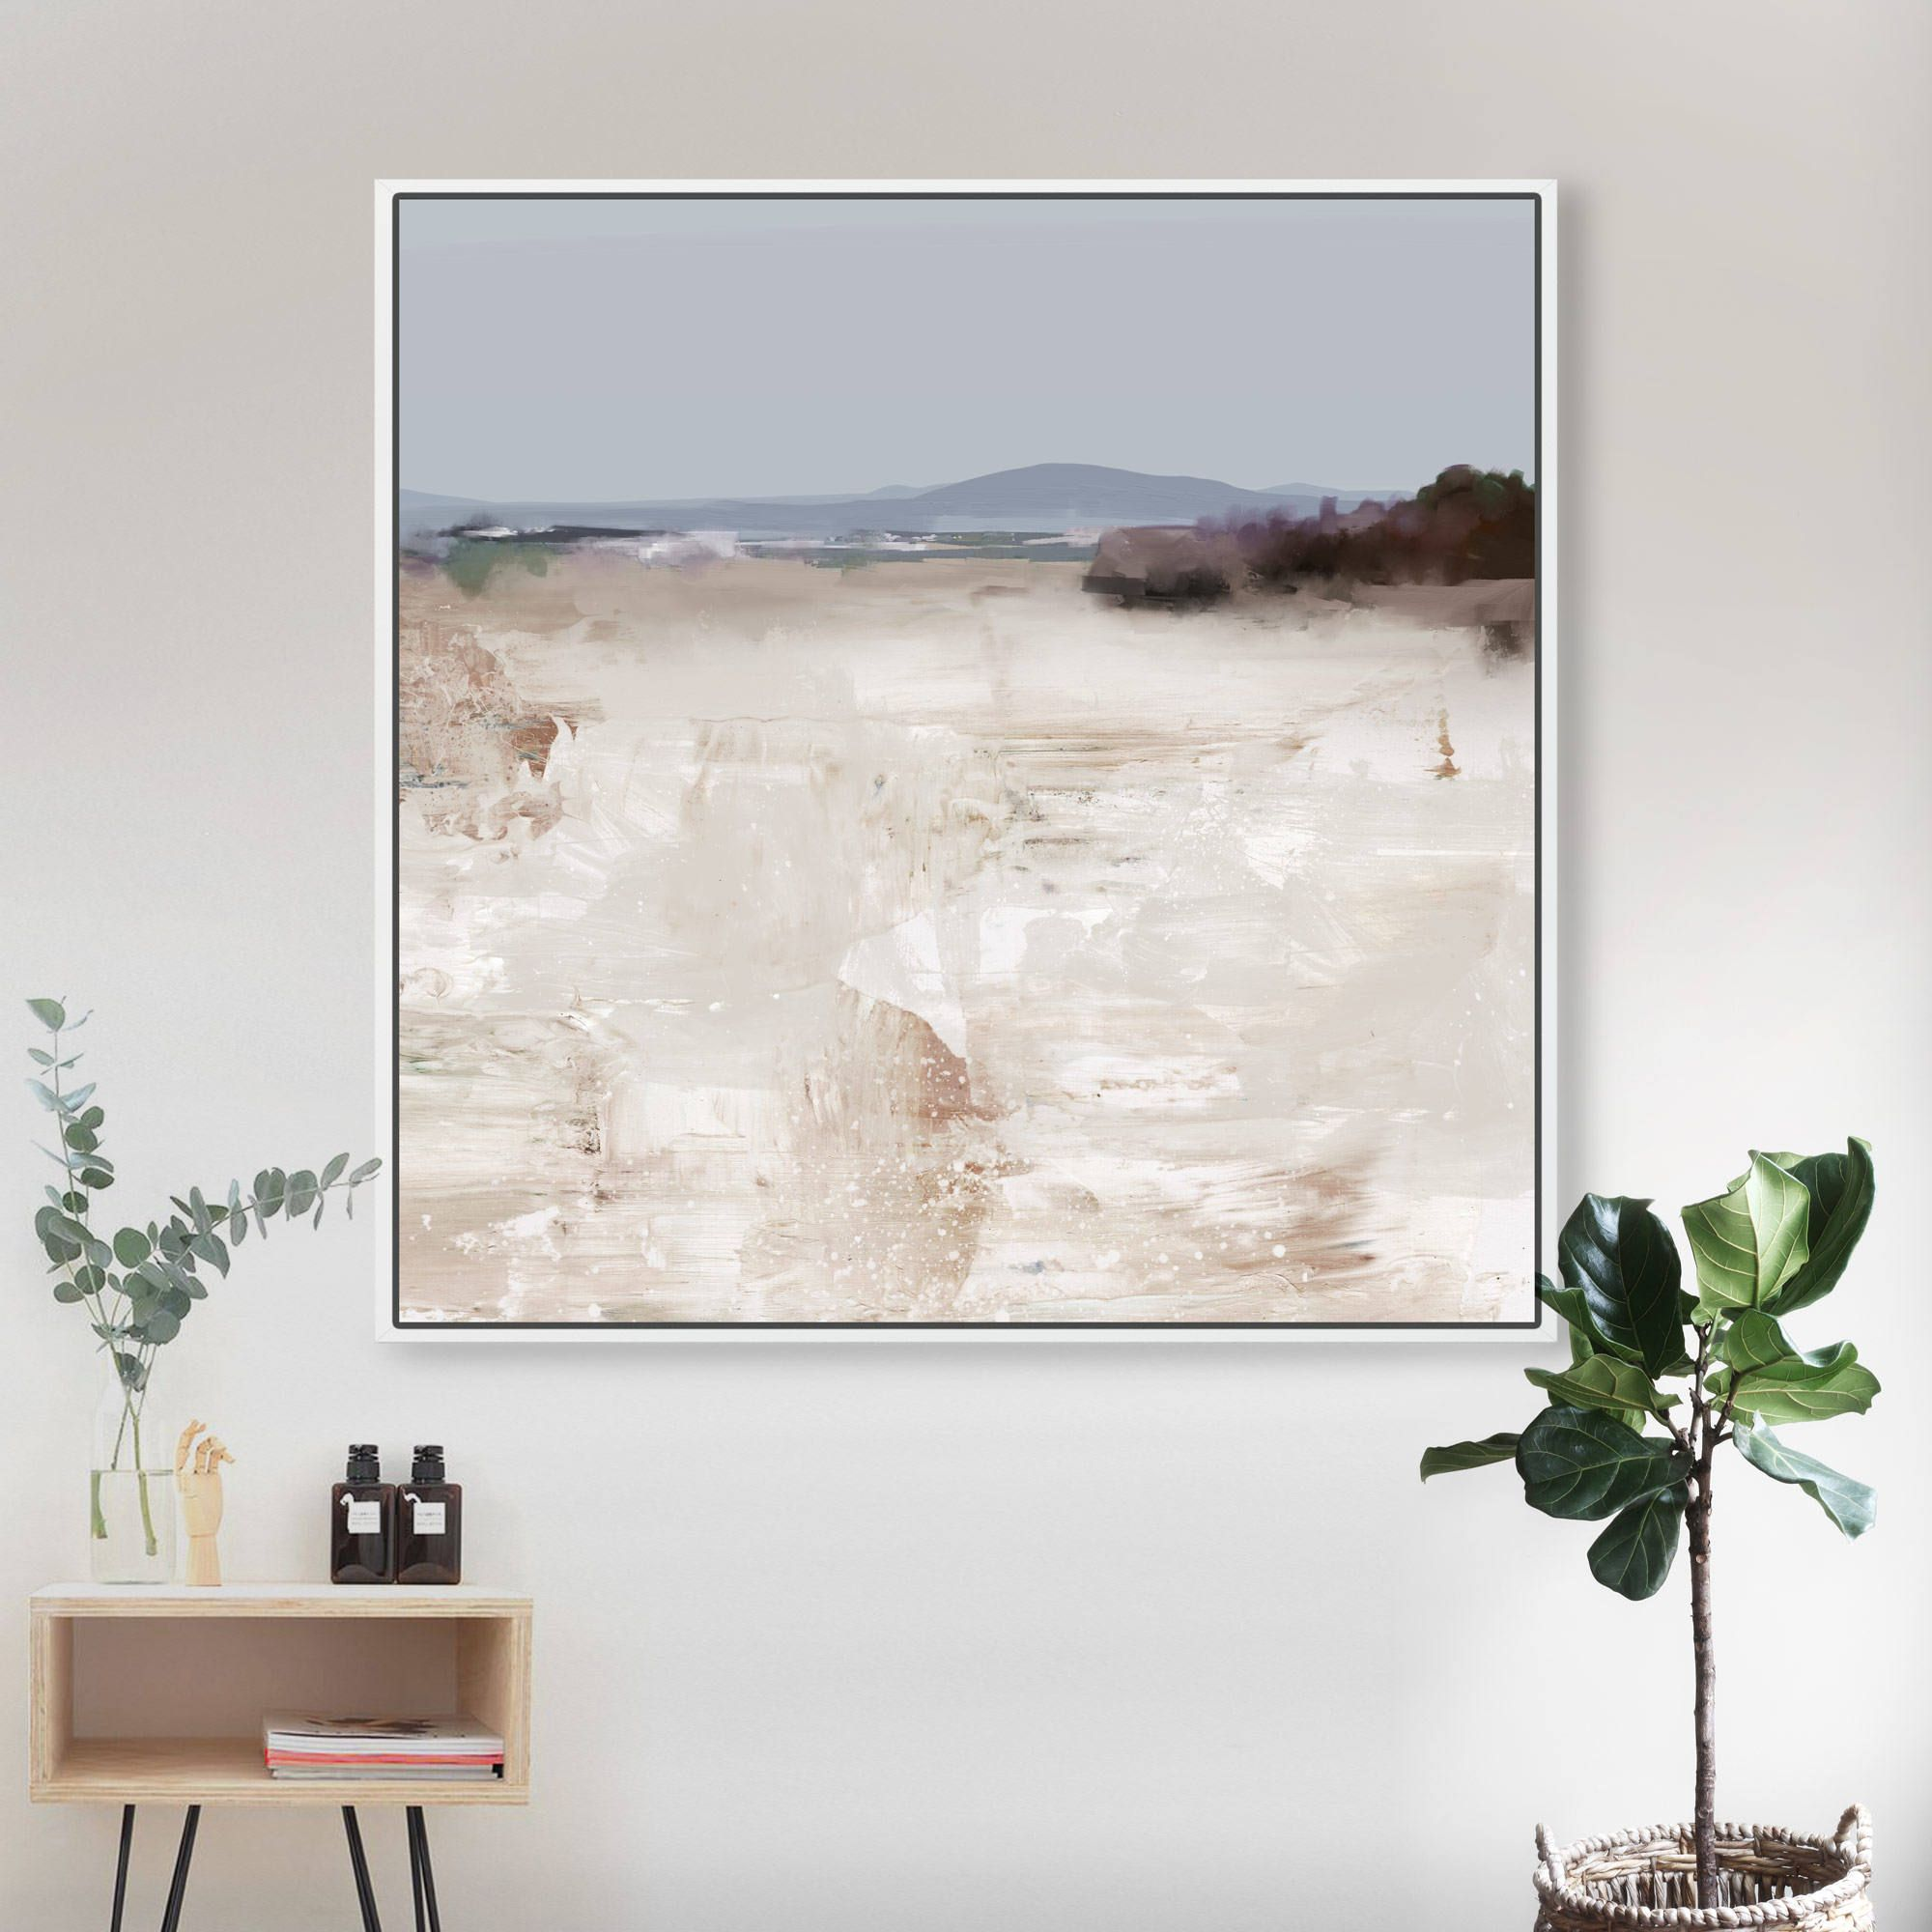 Abstract Landscape Painting Large Abstract Art Large Wall Etsy Large Wall Art Large Landscape Painting Abstract Landscape Painting